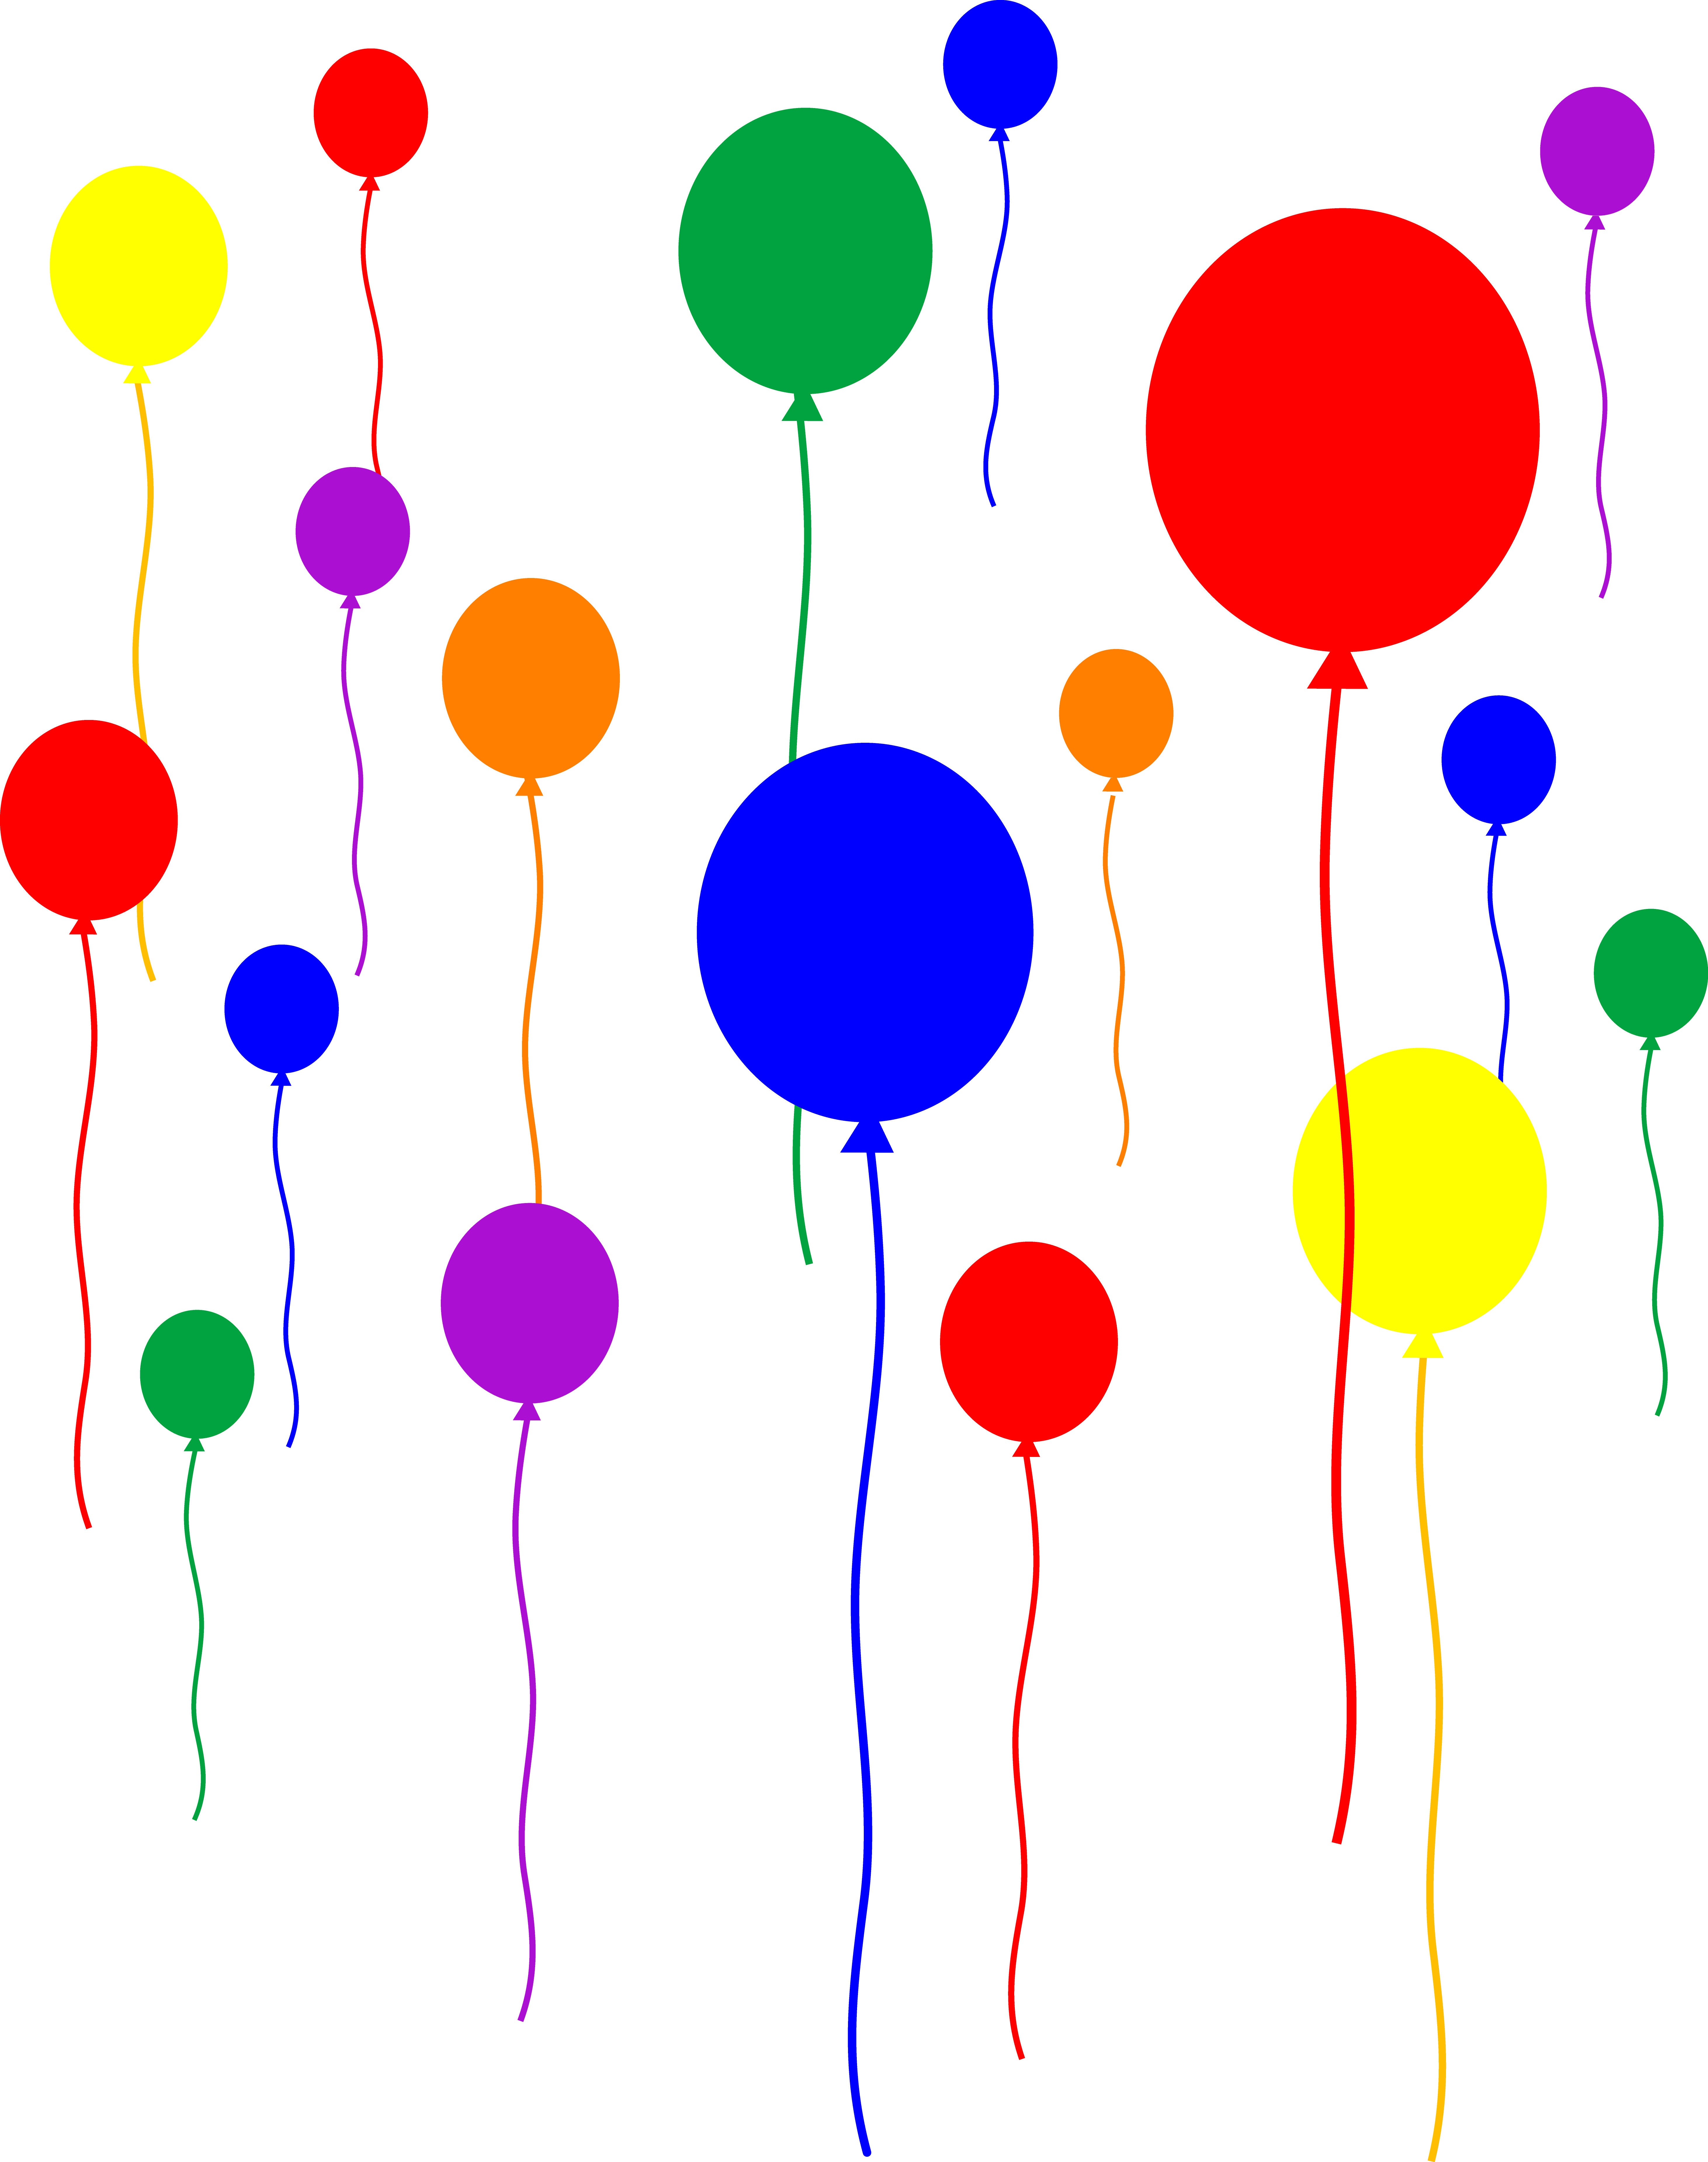 Balloon clipart transparent background - ClipartFox